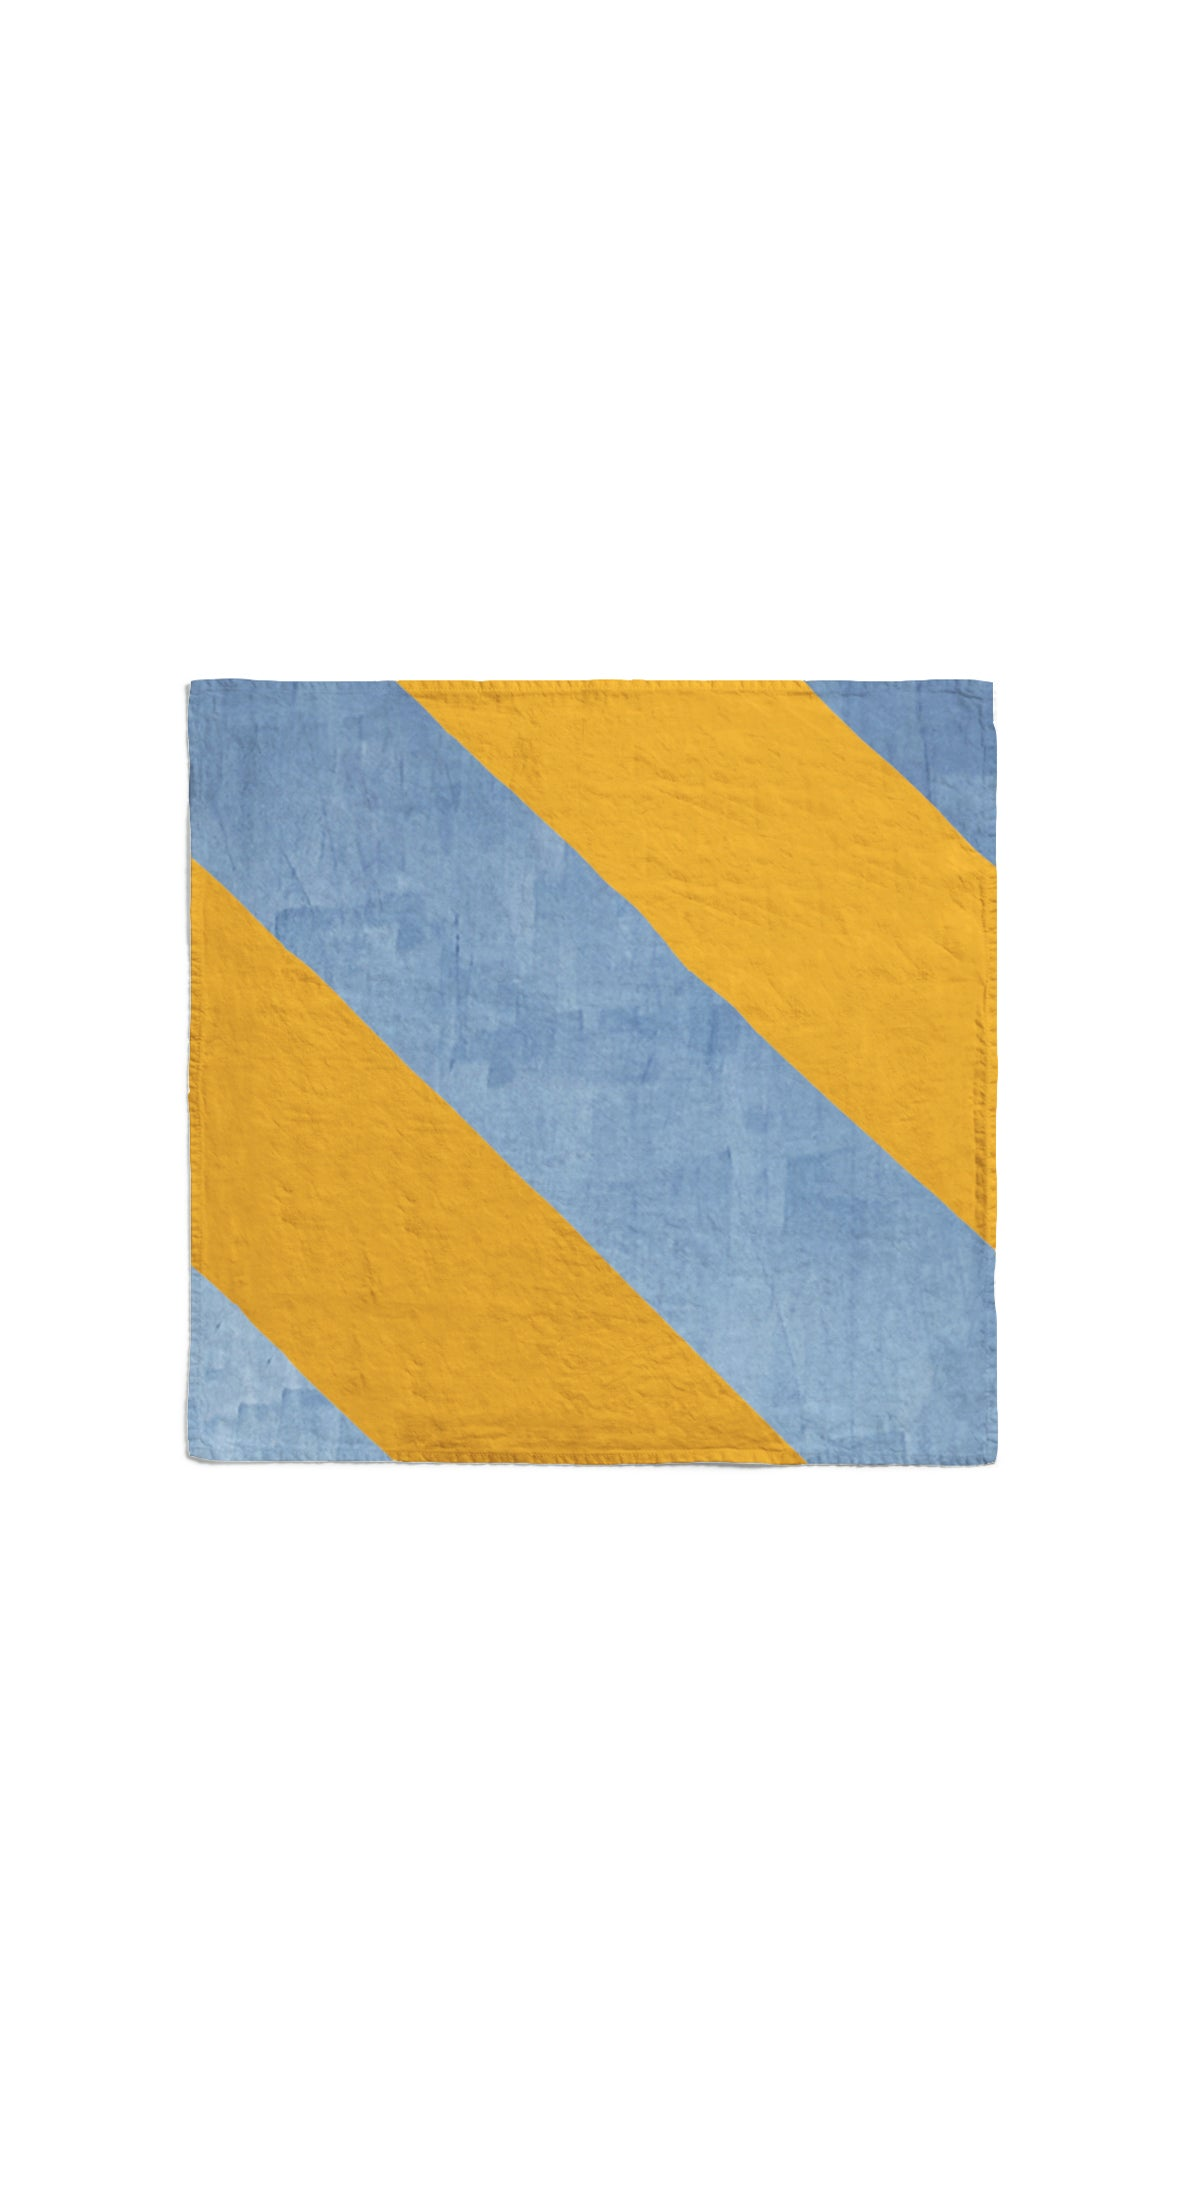 Stripe Linen Napkin in Mustard Yellow and Pale Blue